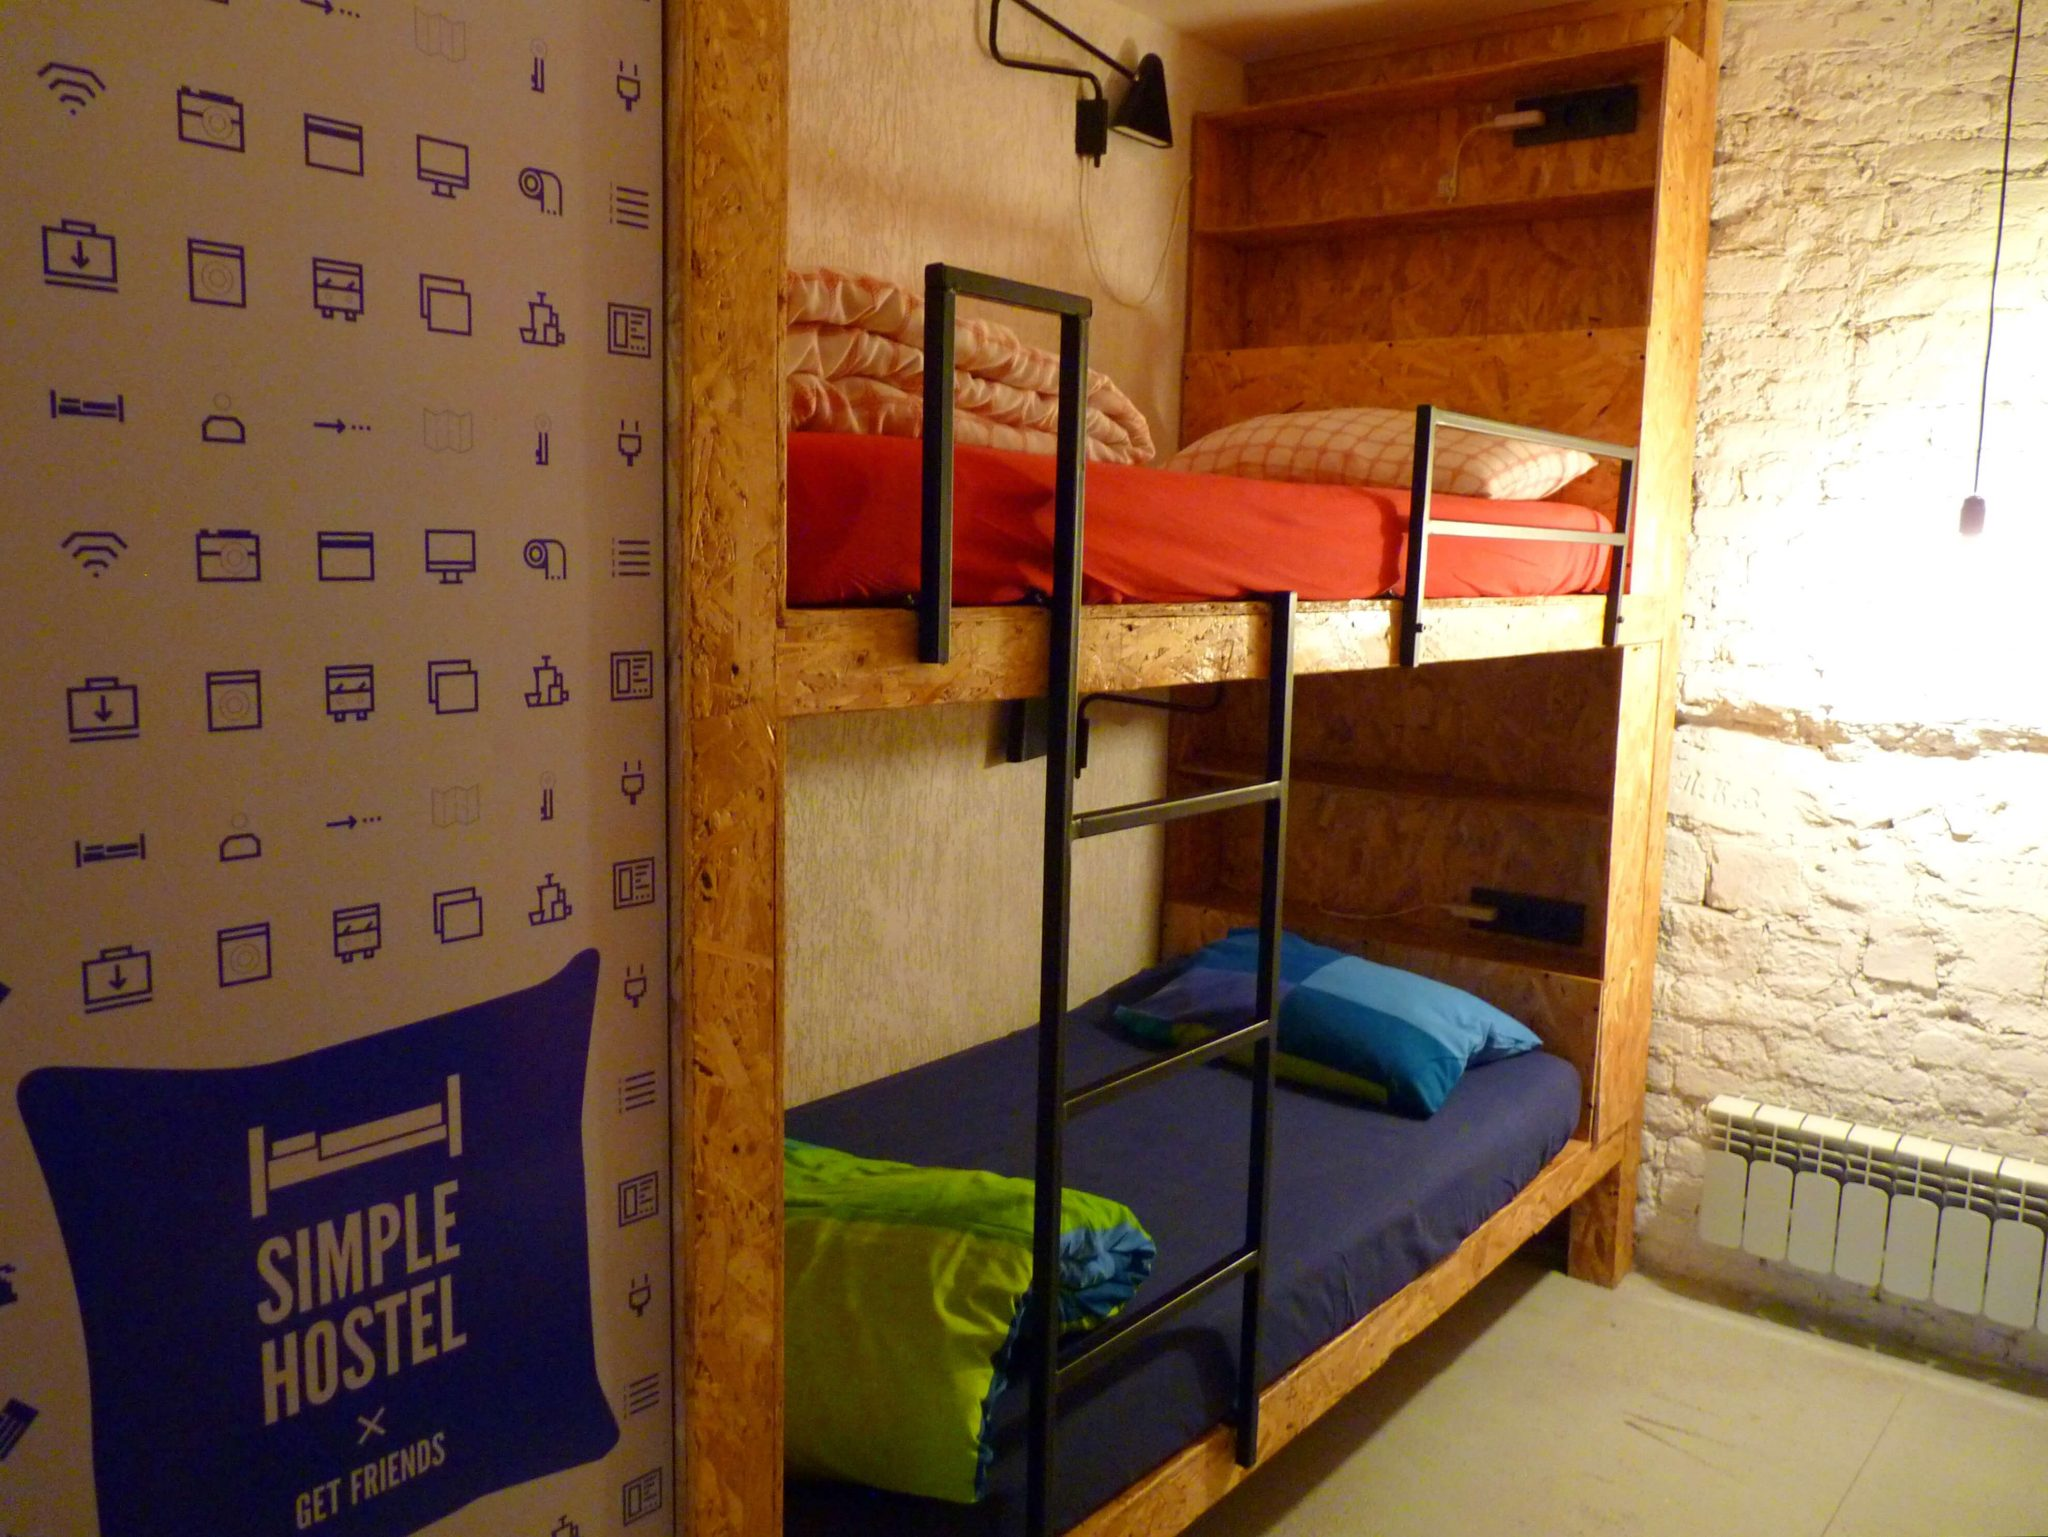 Simple Hostel camarata 3 São Petersburgo Rússia Mundo Indefinido